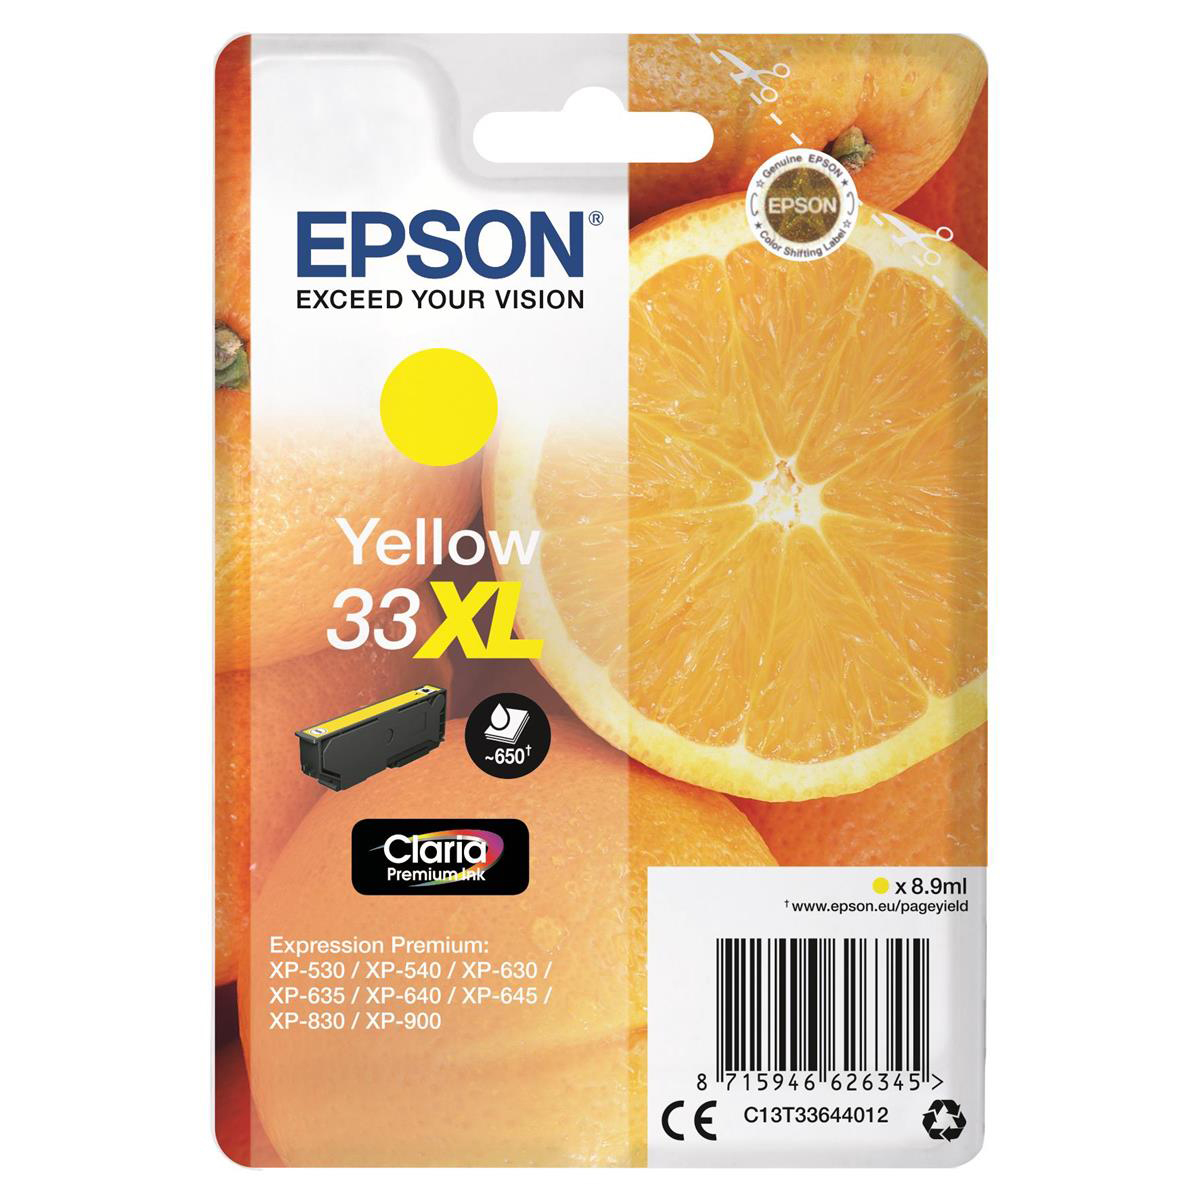 Epson T33XL Inkjet Cartridge Orange High Yield Page Life 650pp 8.9ml Yellow Ref C13T33644012